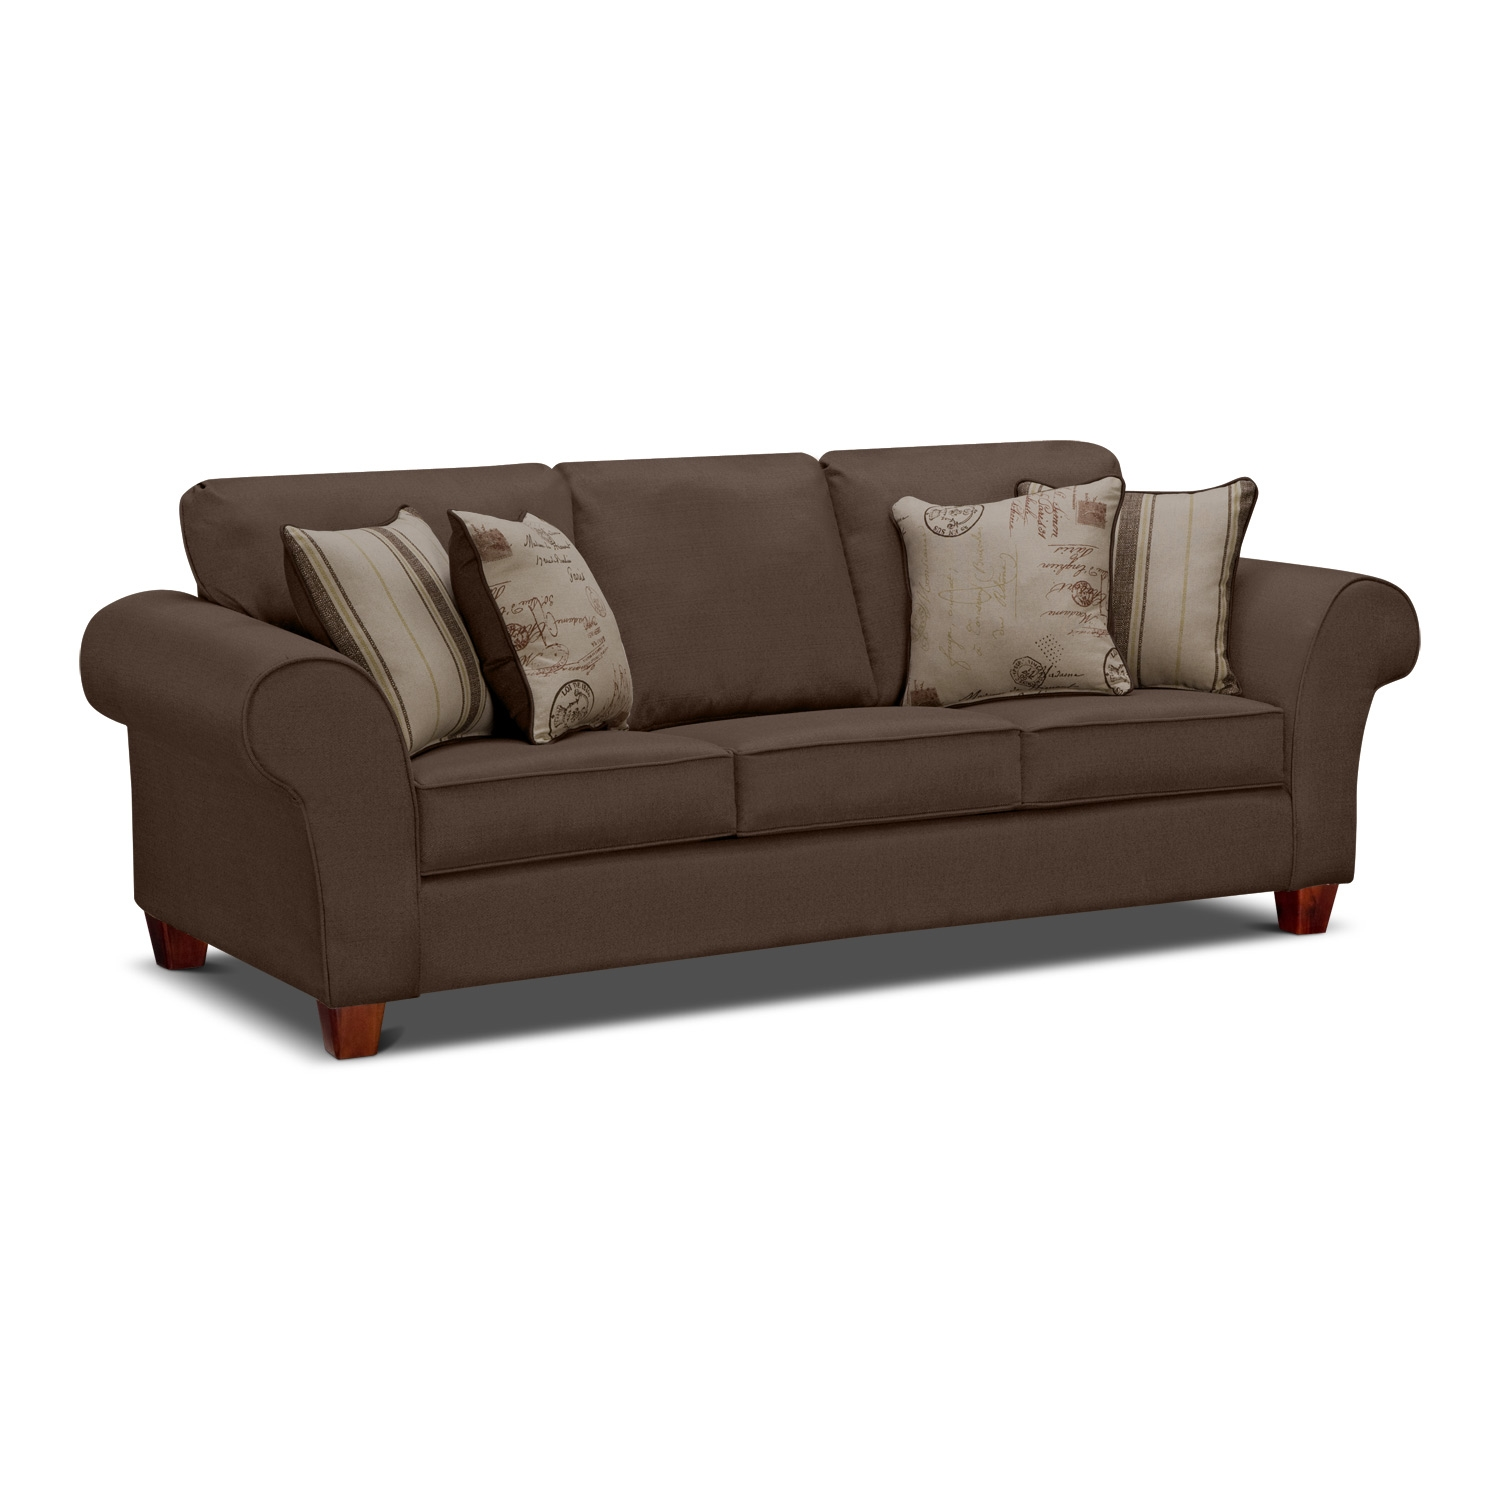 Sofas on sale ikea couch amp sofa ideas interior design sofaideas